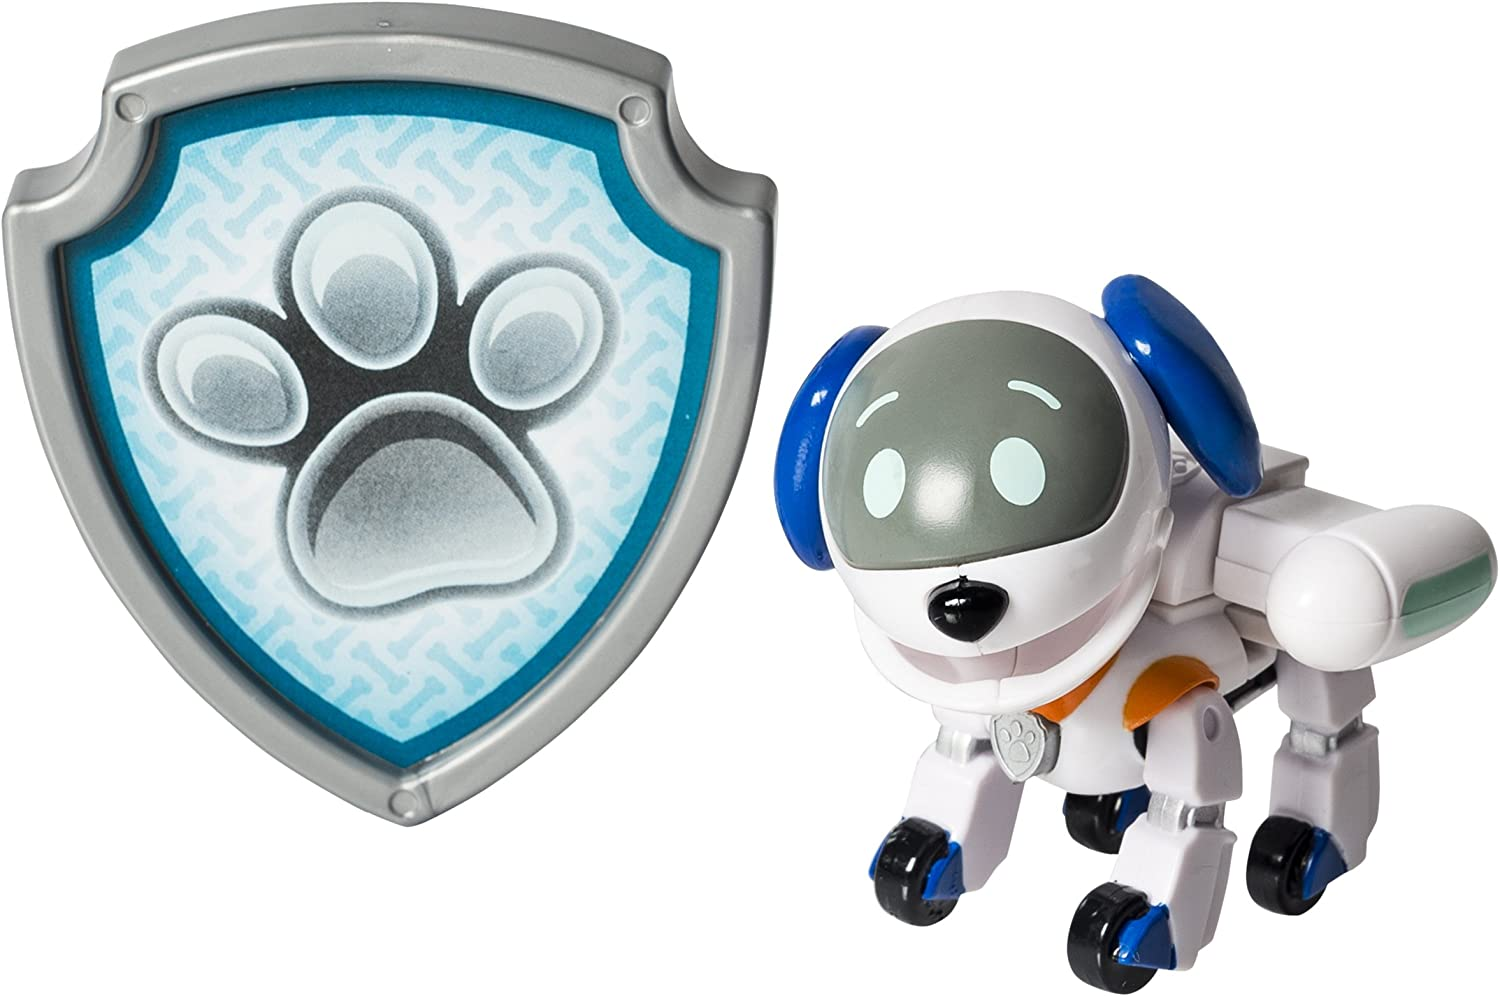 Top 10 Best Robot Pets For Kids (2020 Reviews & Buying Guide) 1